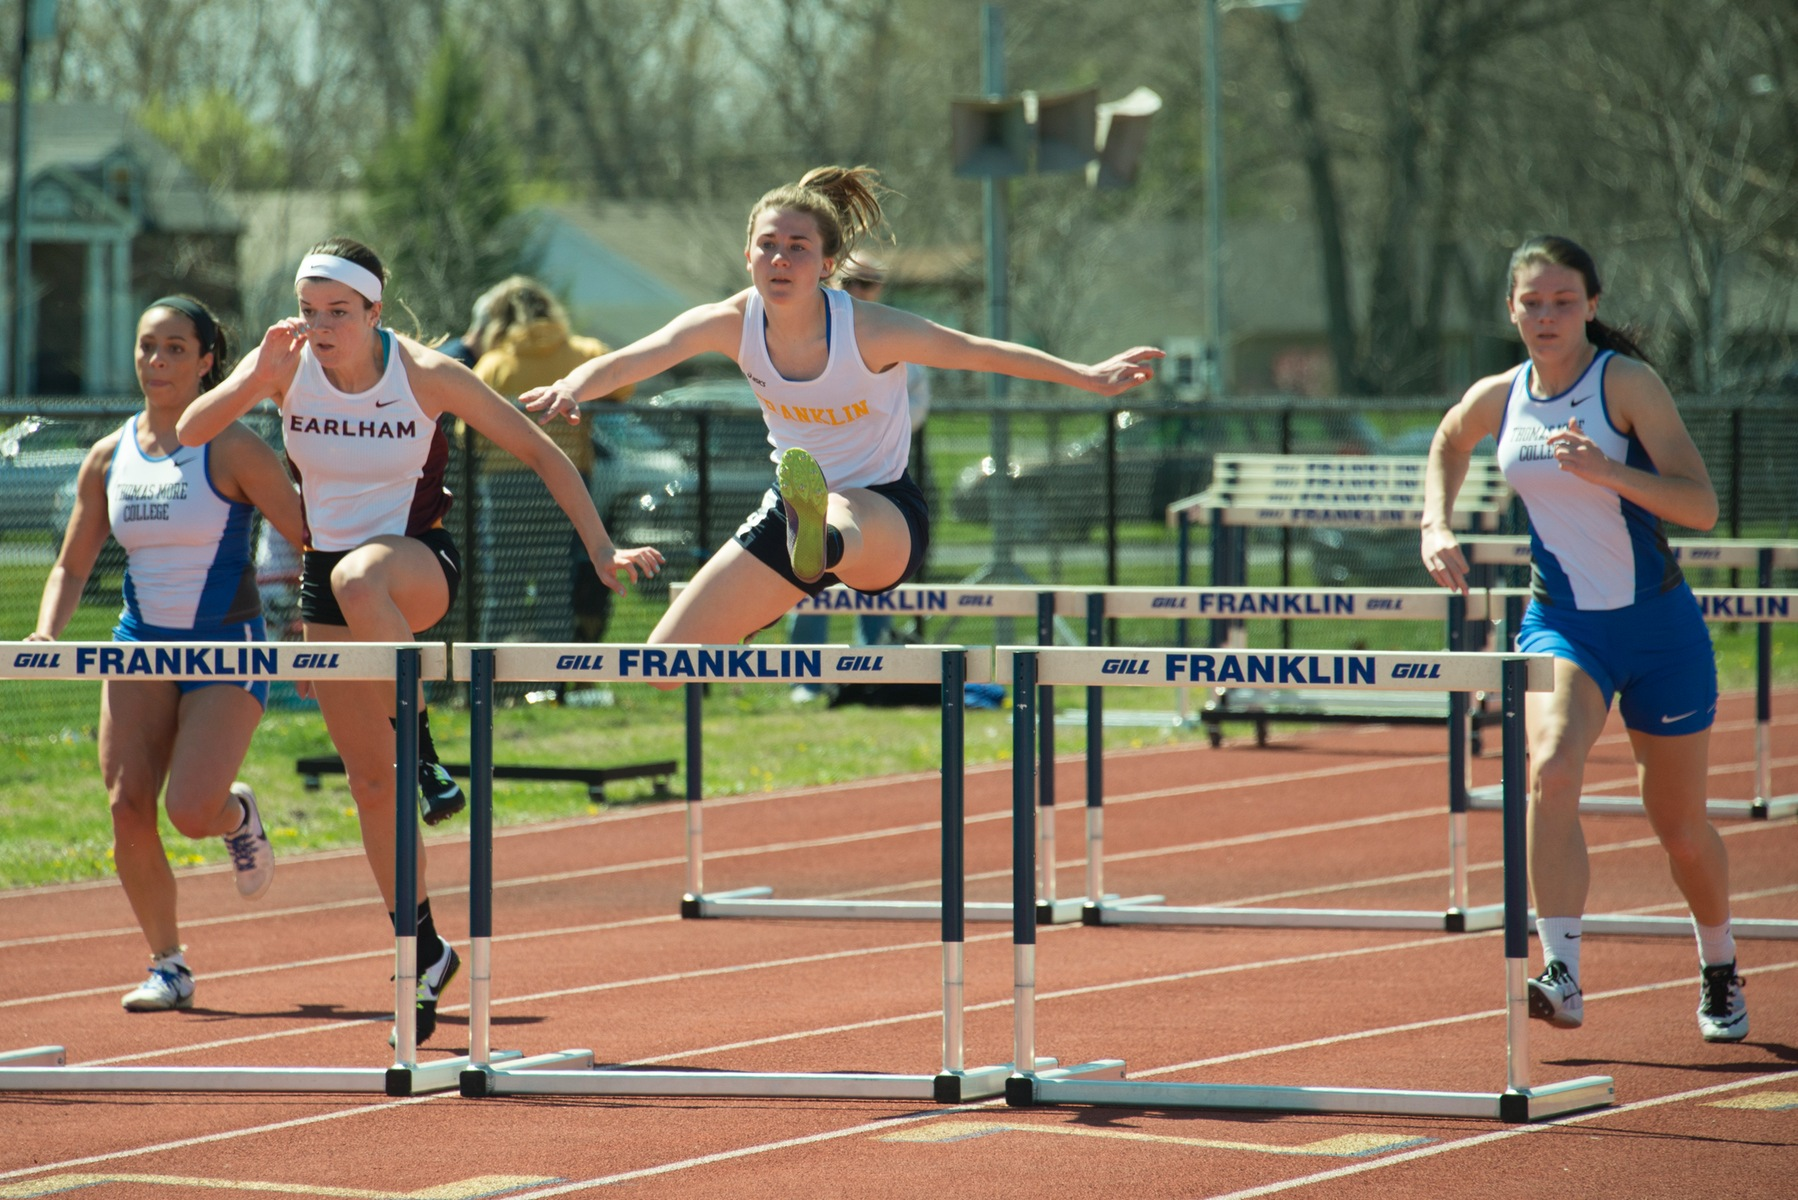 Women's Track Team Places 6th At Championships